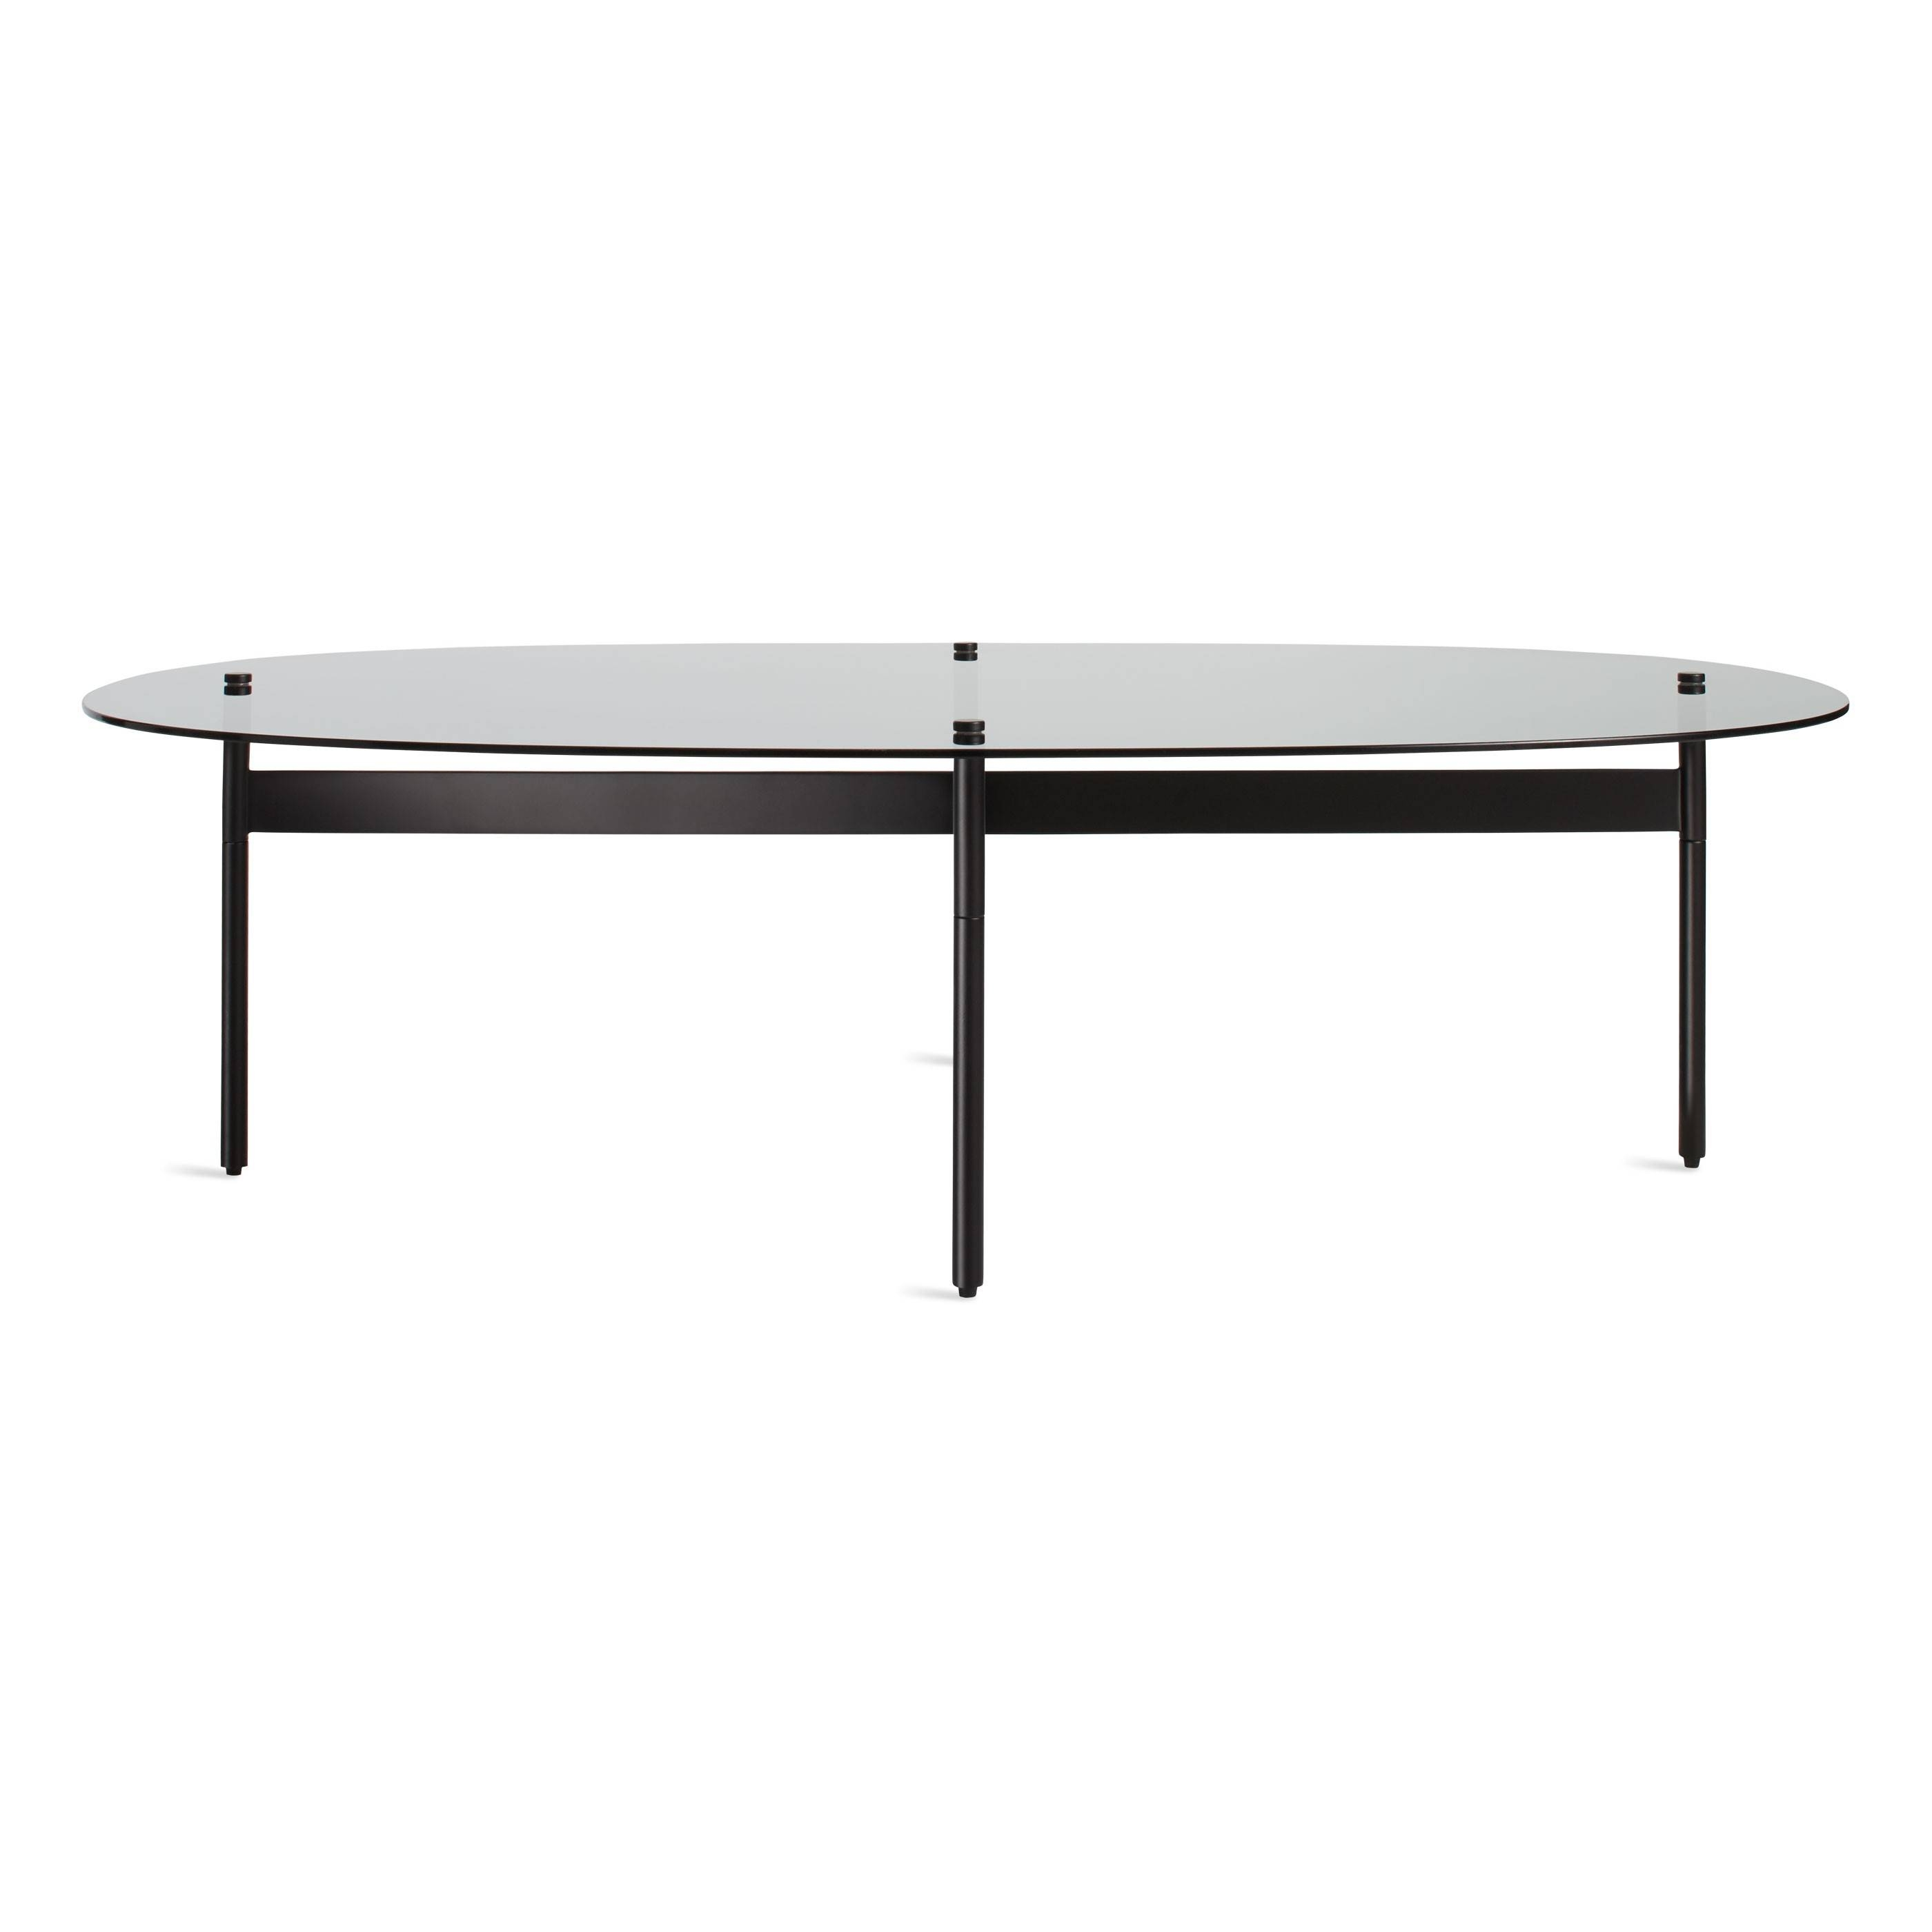 Flume Coffee Table - Modern Oval Coffee Table | Blu Dot in Black Oval Coffee Table (Image 16 of 30)